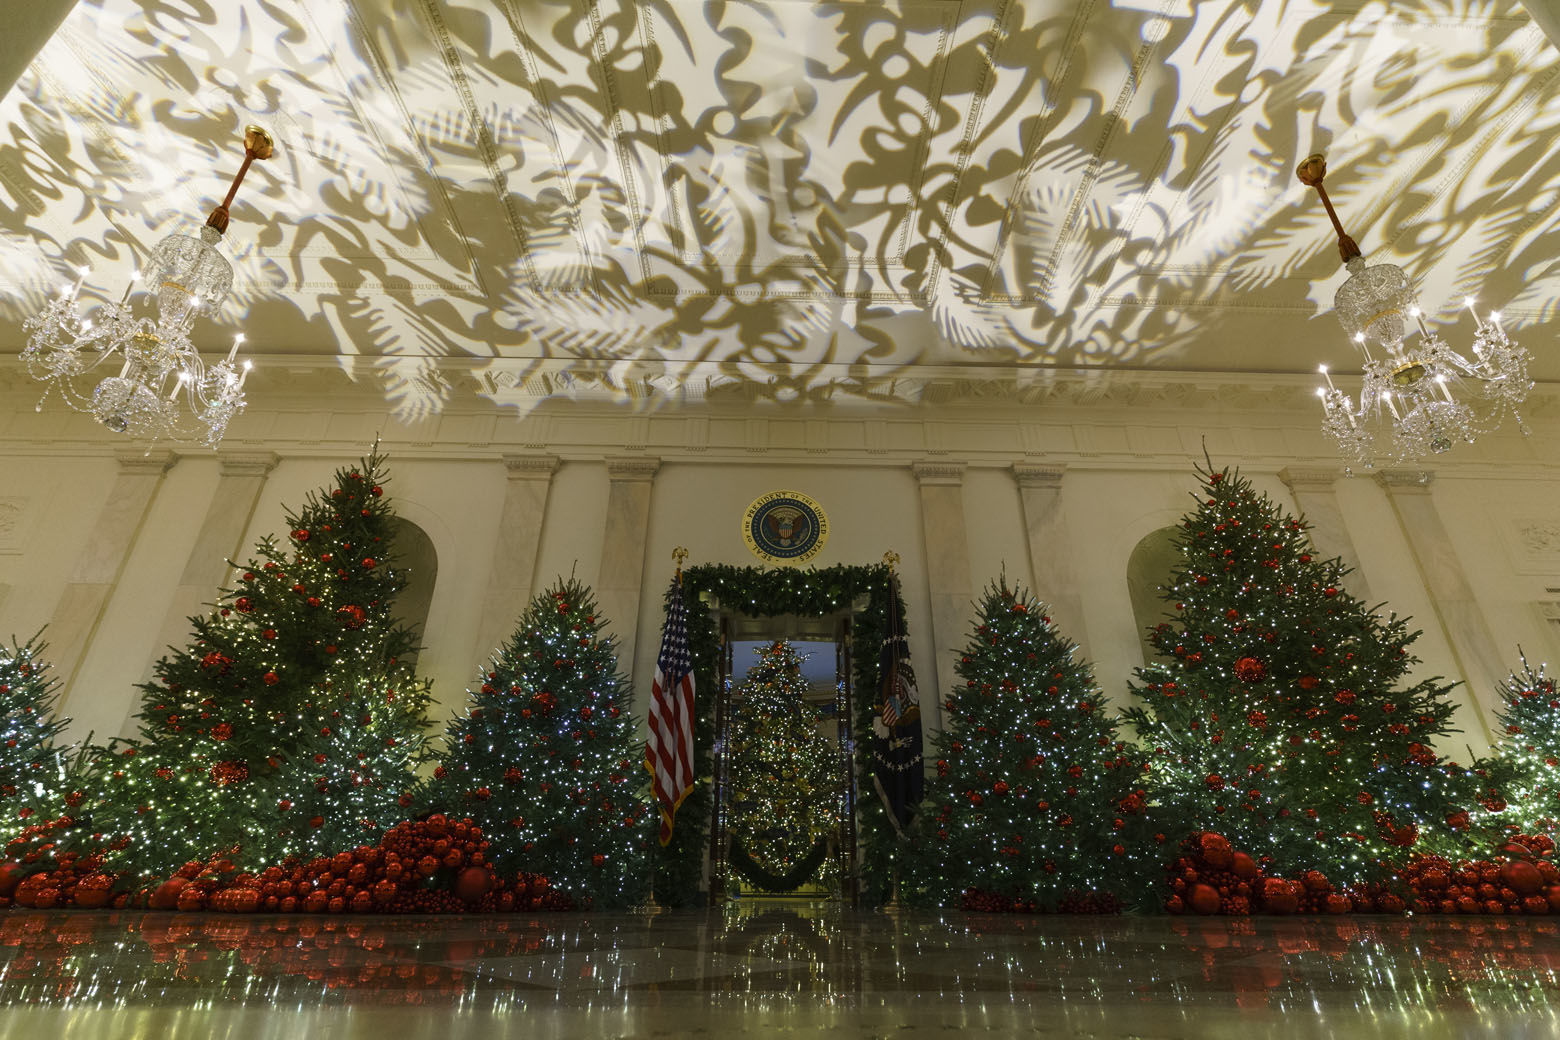 "Grand Foyer and Cross Hall leading into the Blue Room and the official White House Christmas tree are seen during the 2018 Christmas Press Preview at the White House in Washington, Monday, Nov. 26, 2018. Christmas has arrived at the White House. First lady Melania Trump unveiled the 2018 White House holiday decor on Monday. She designed the decor, which features a theme of ""American Treasures."" (AP Photo/Carolyn Kaster)"